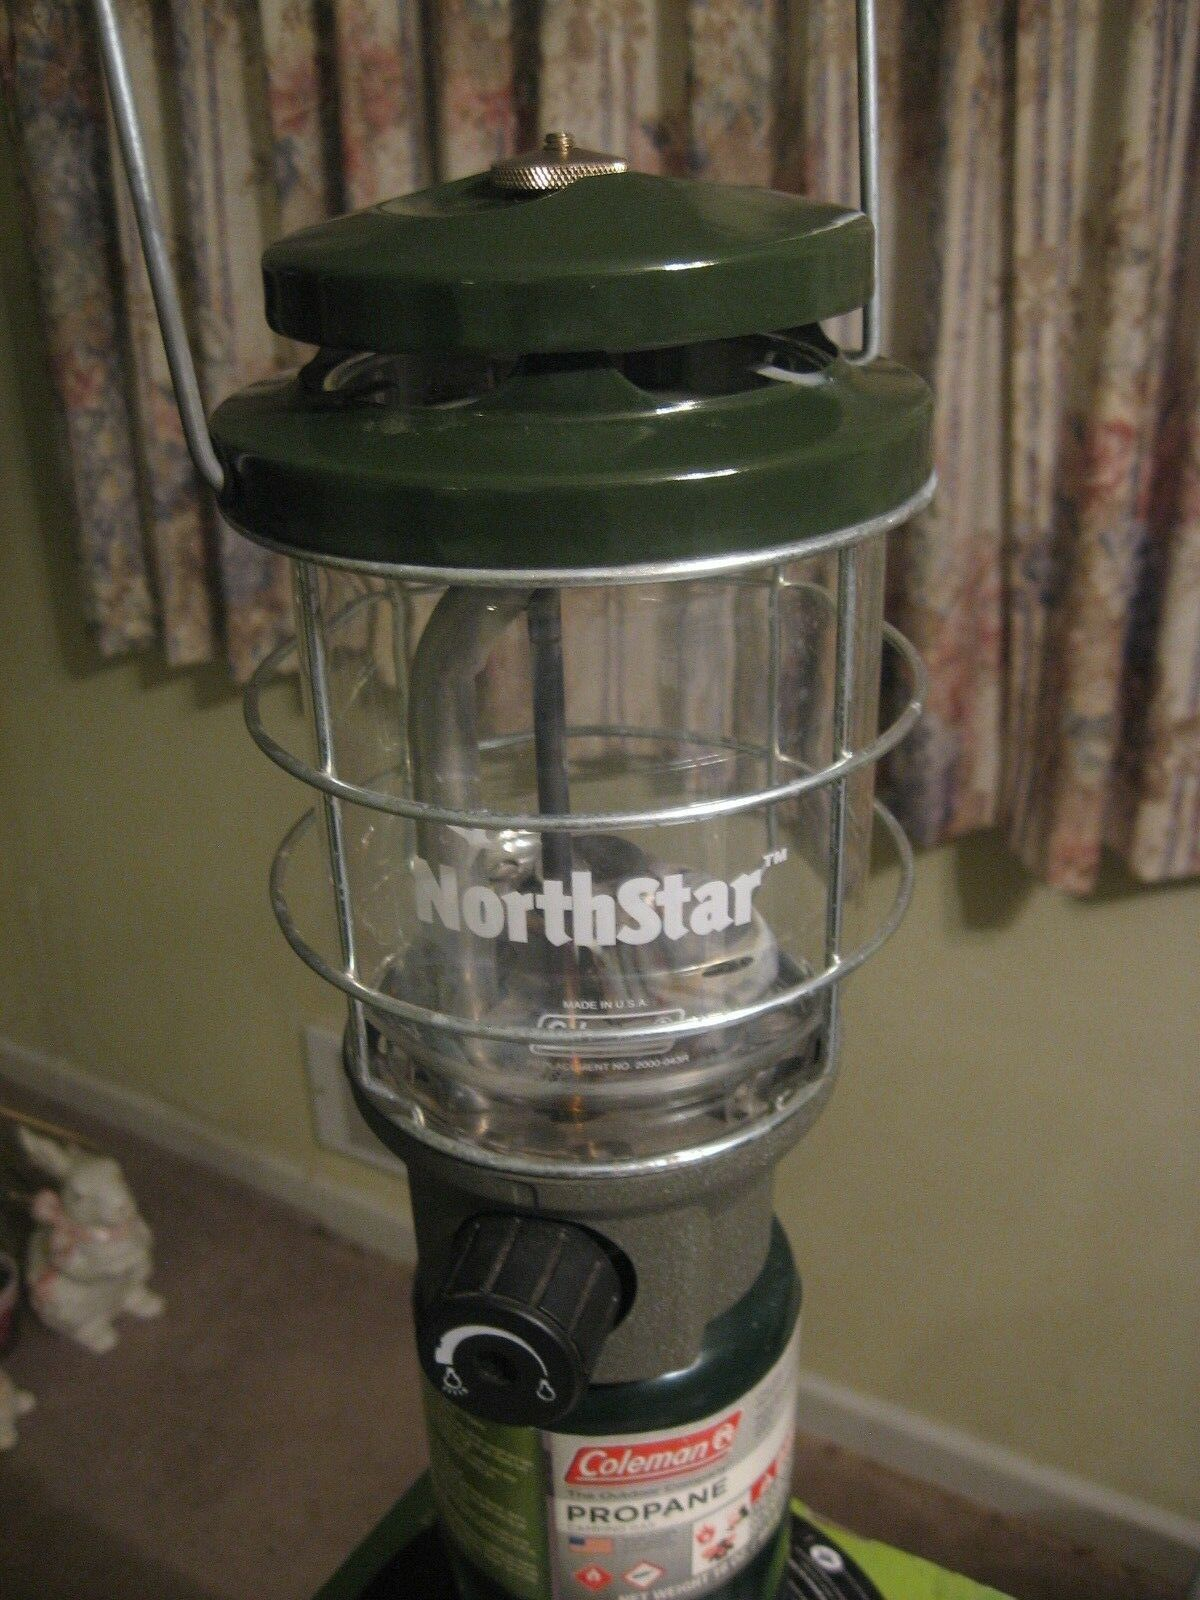 COLEMAN NORTHSTAR  PROPANE LANTERN in Excellent Condition    we supply the best